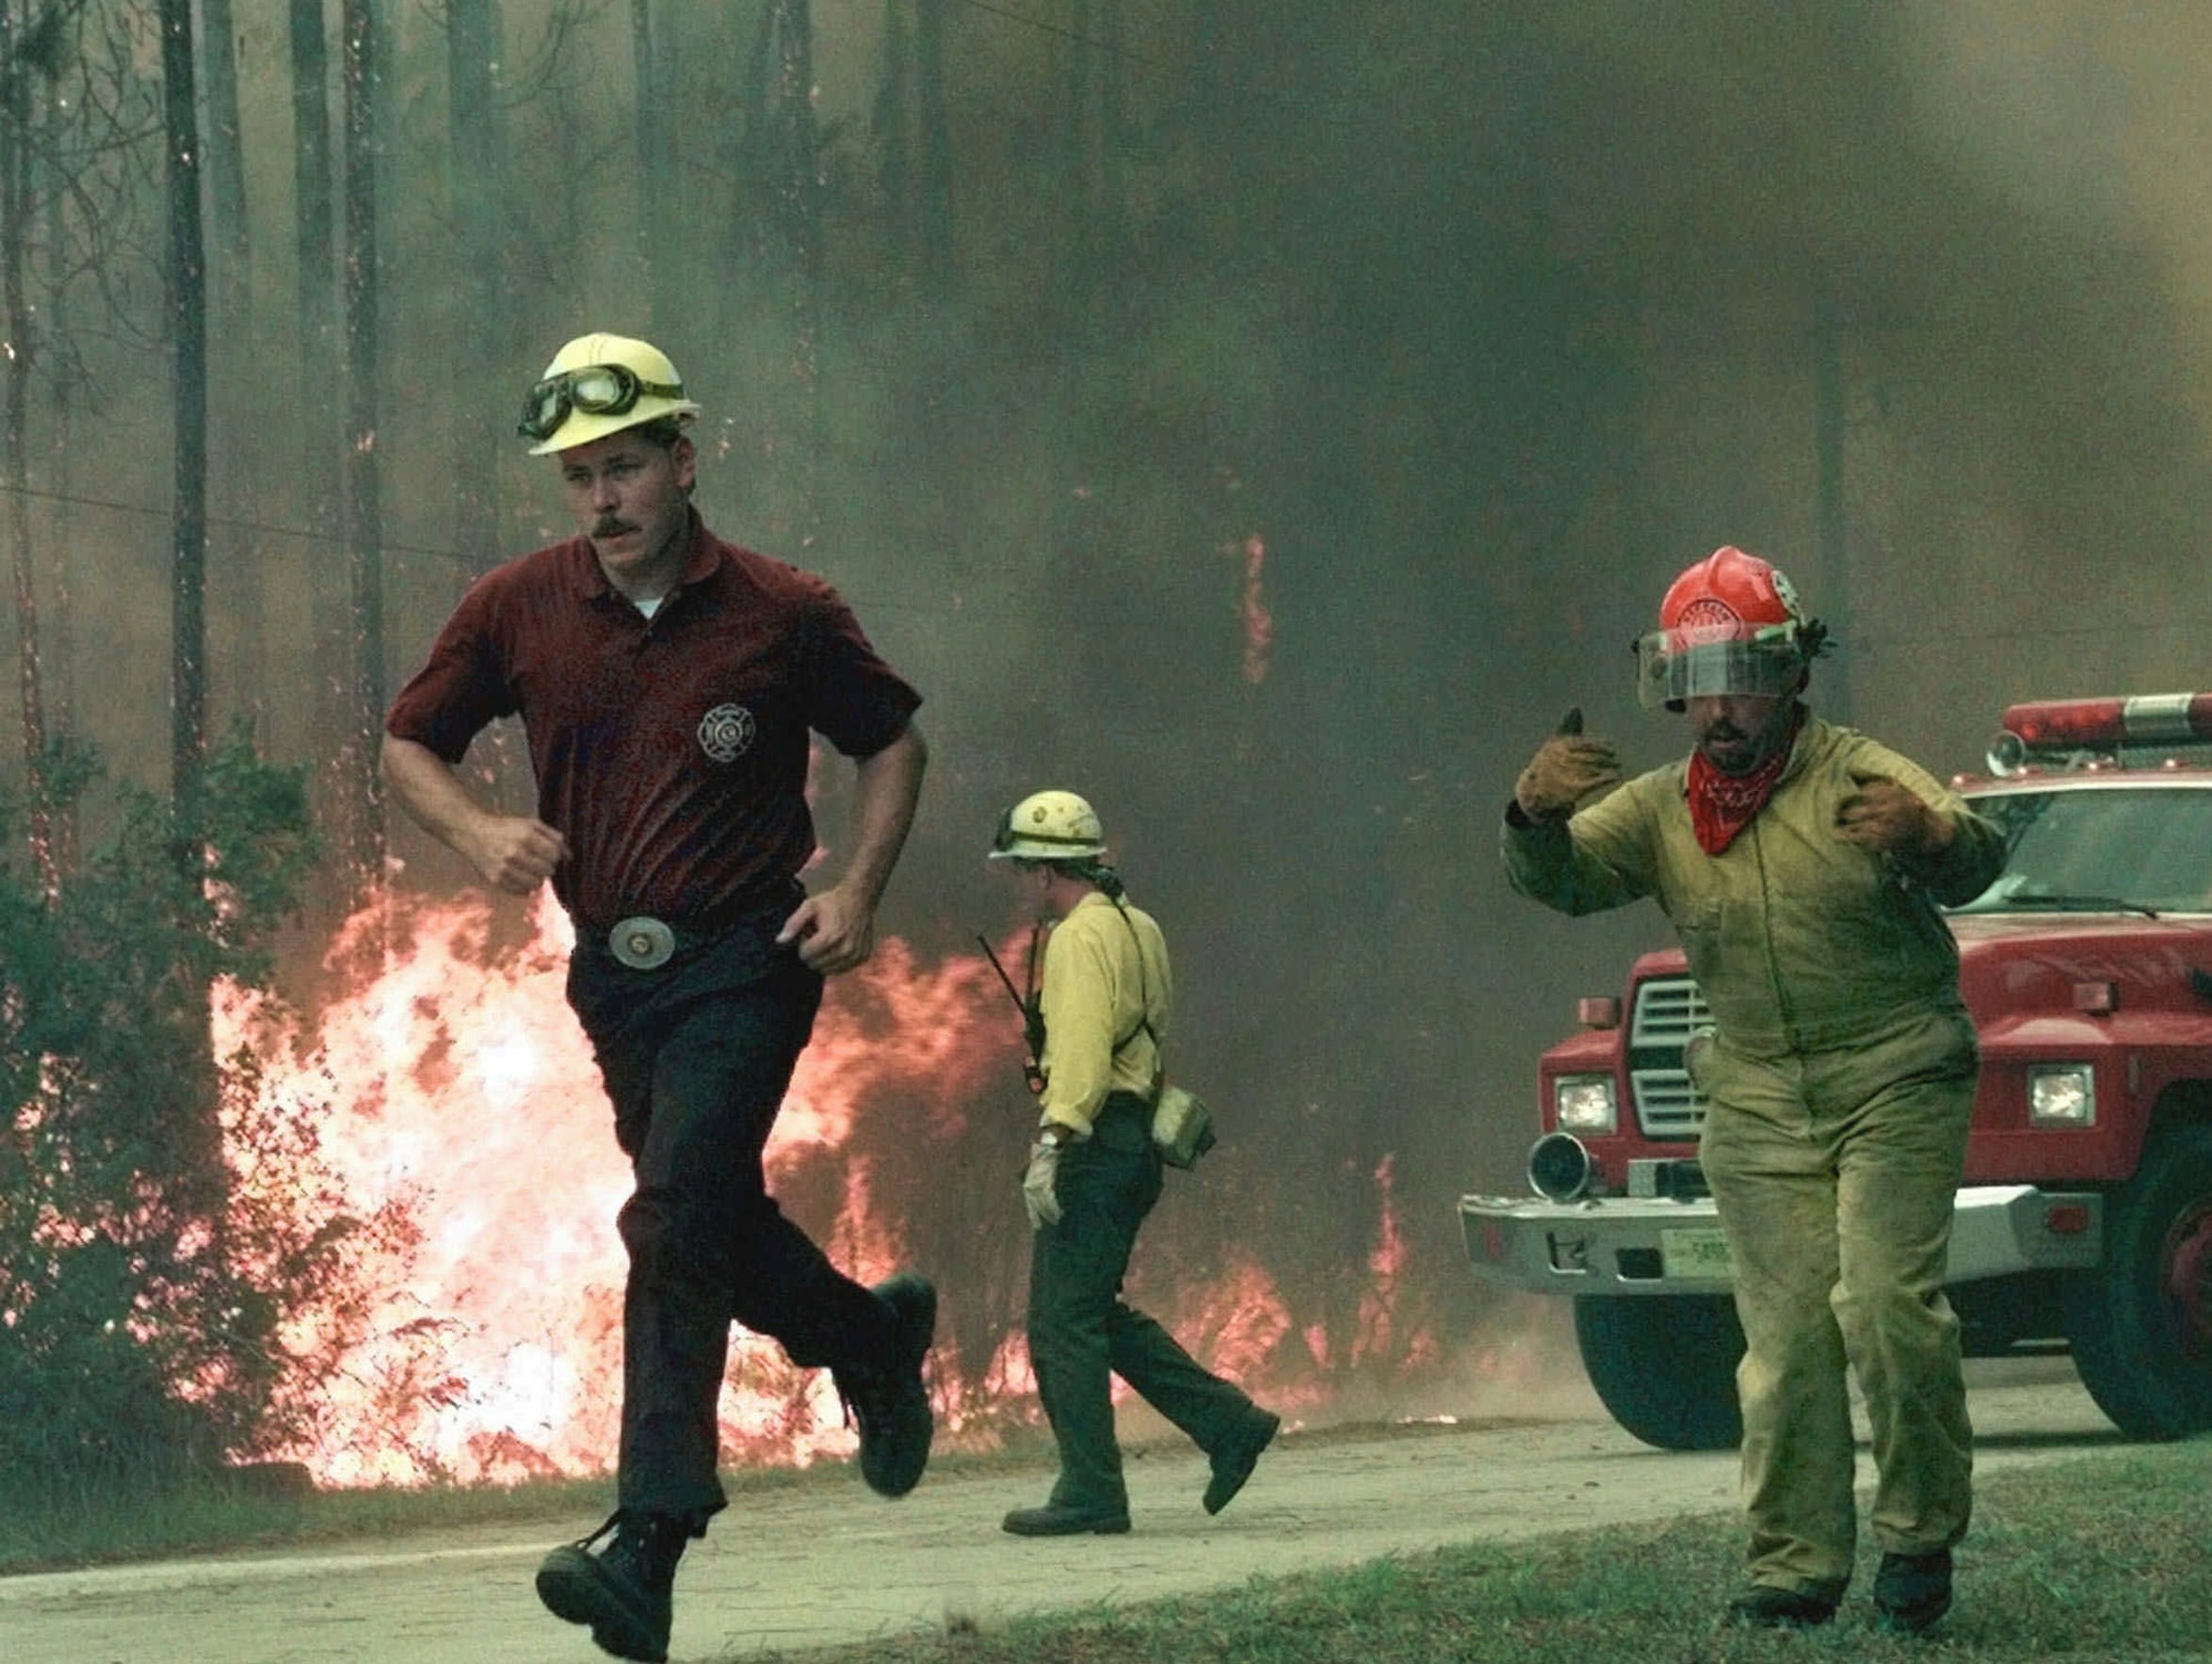 Firefighters call for more equipment as a firestorm,